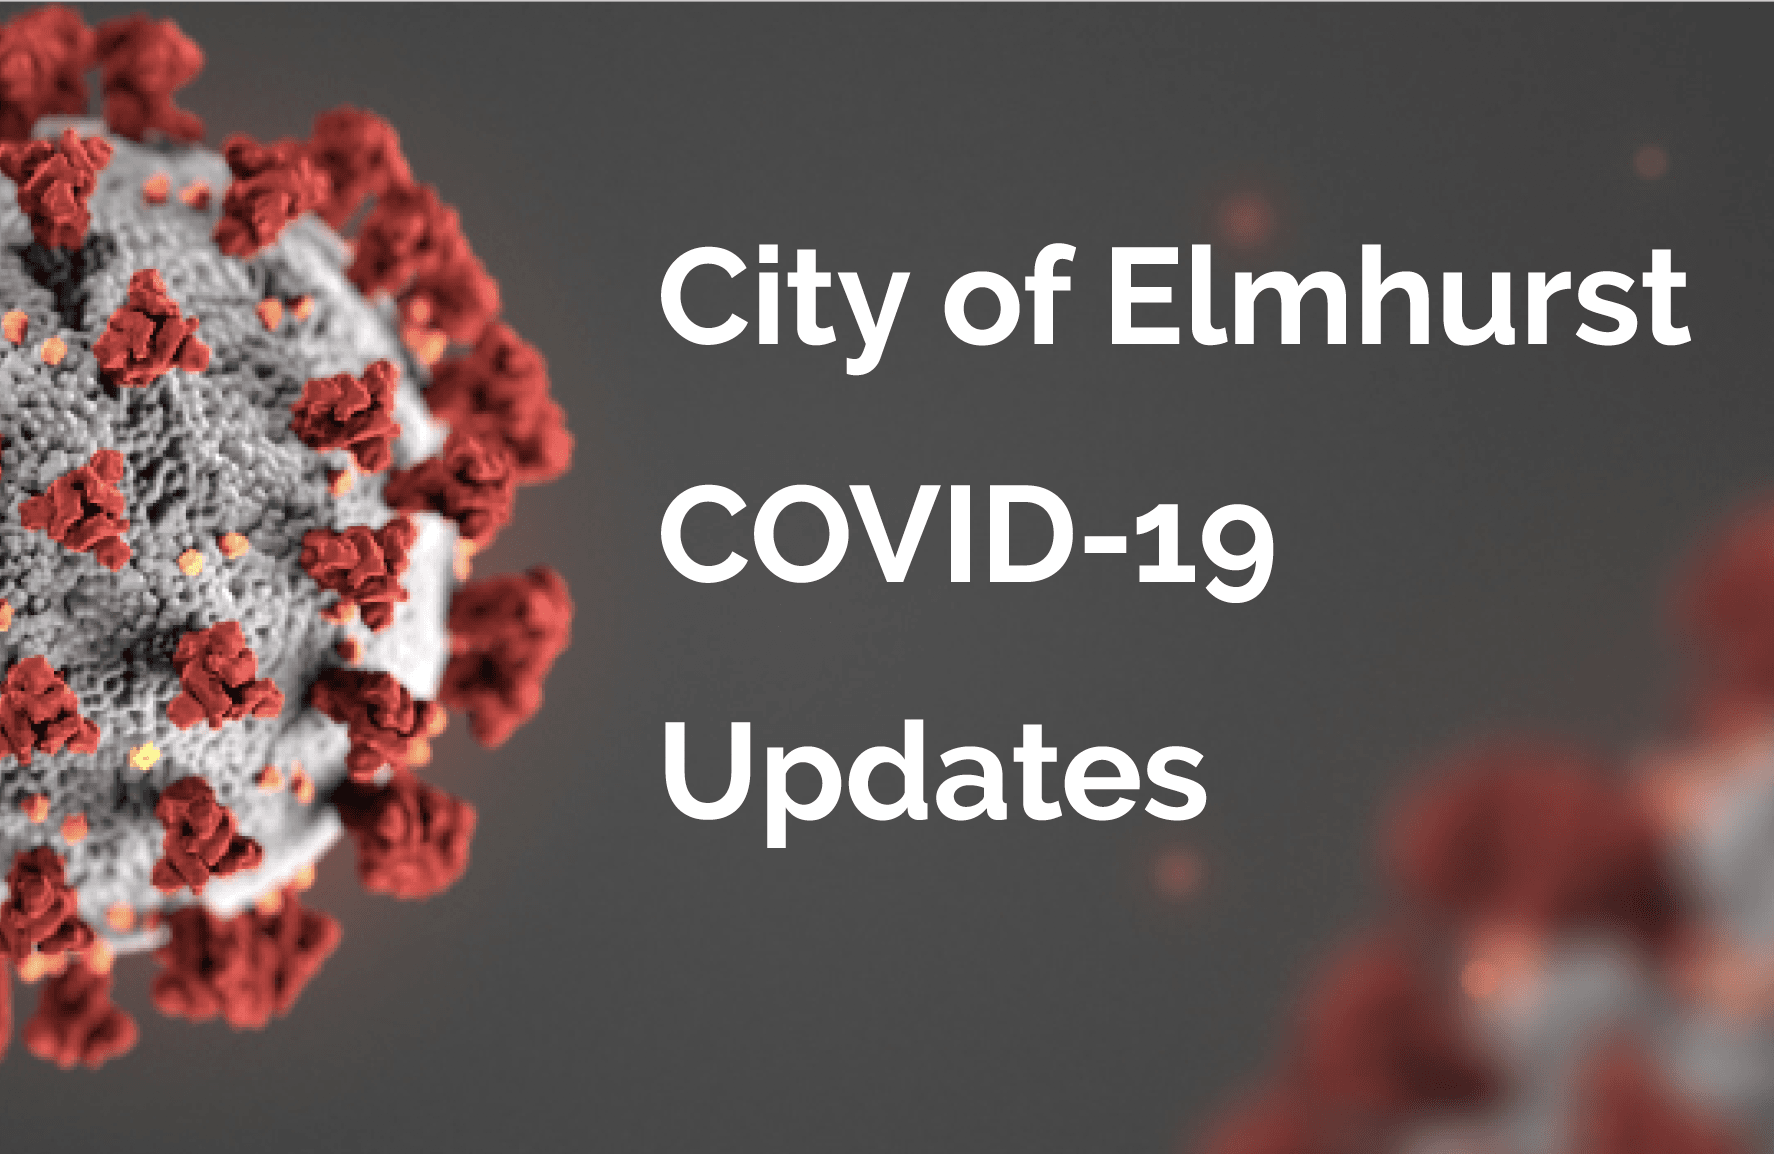 City of Elmhurst COVID-19 Updates